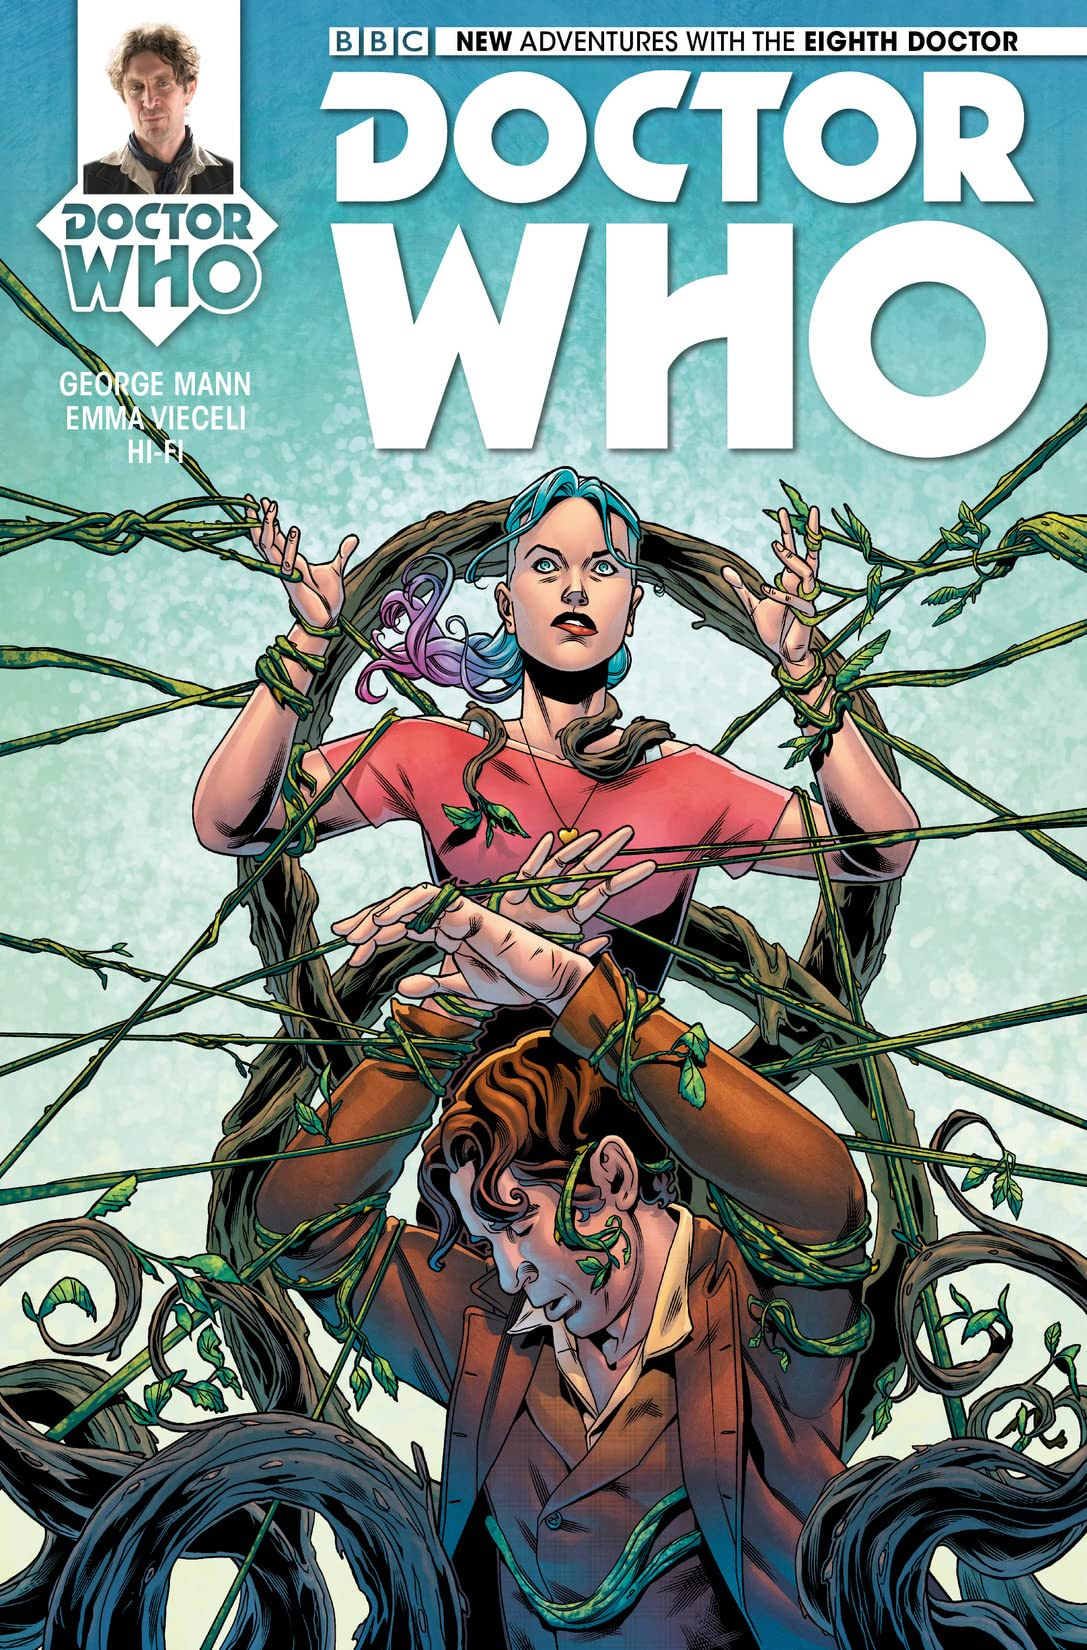 Doctor Who: The Eighth Doctor #4